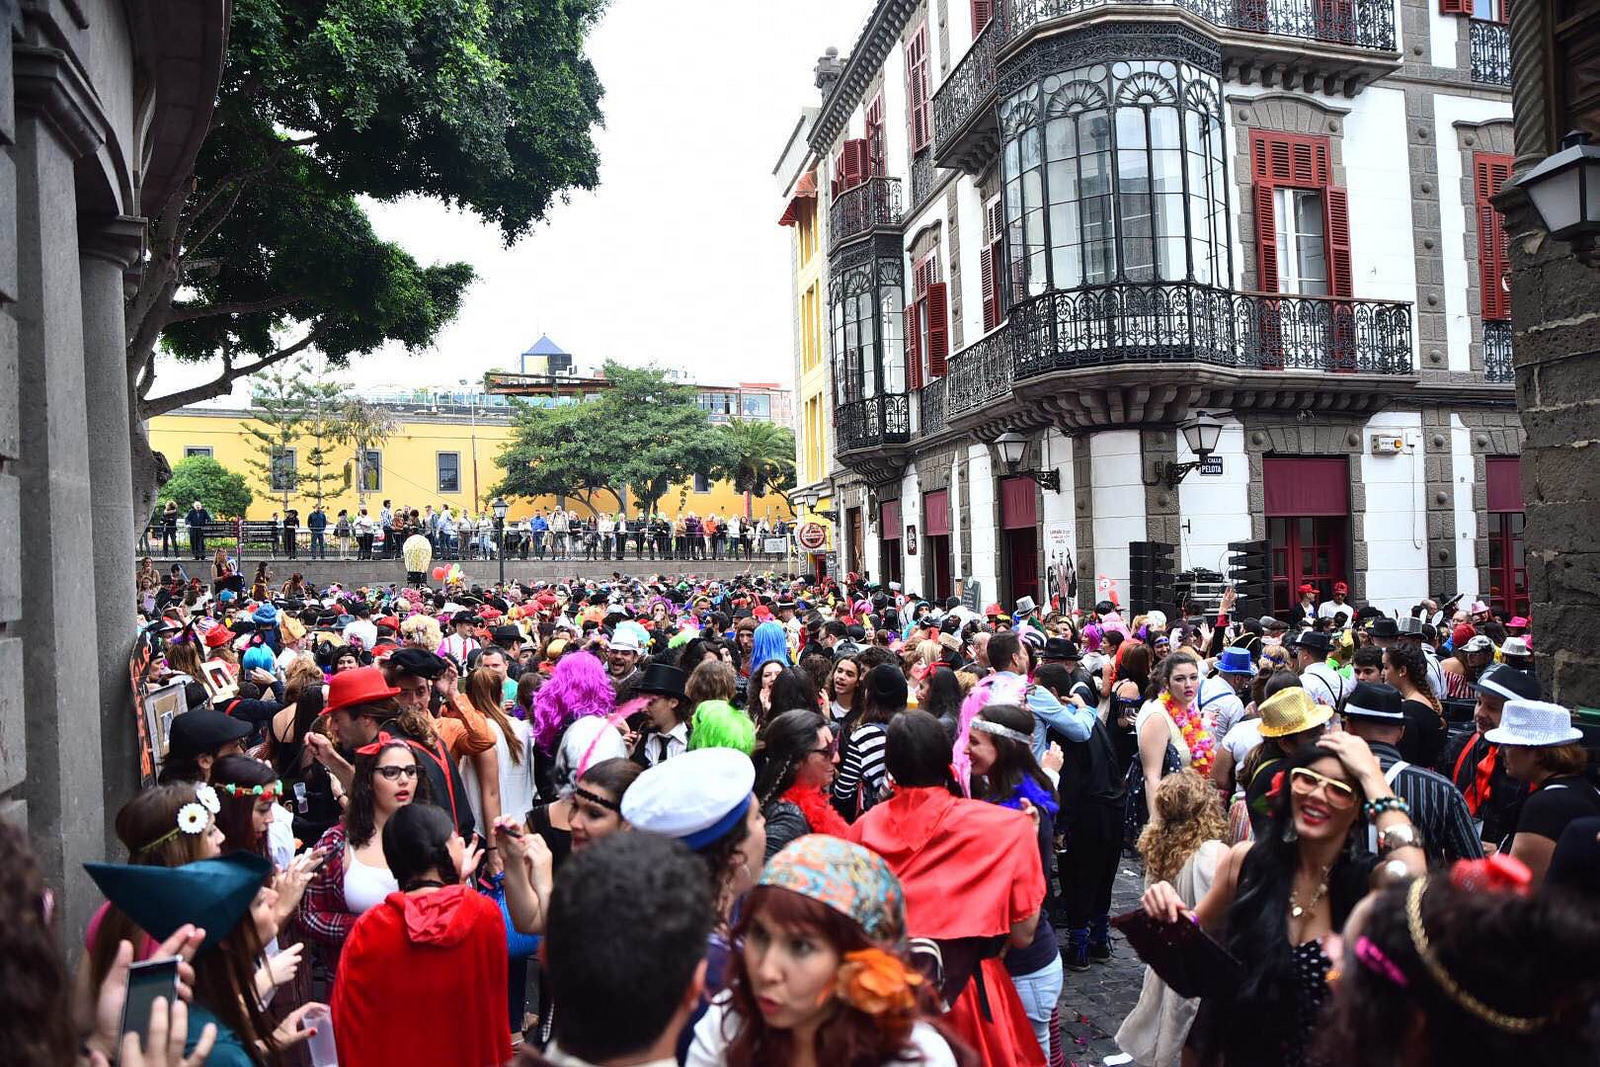 Celebrate Carnival in the daytime too in Las Palmas de Gran Canaria